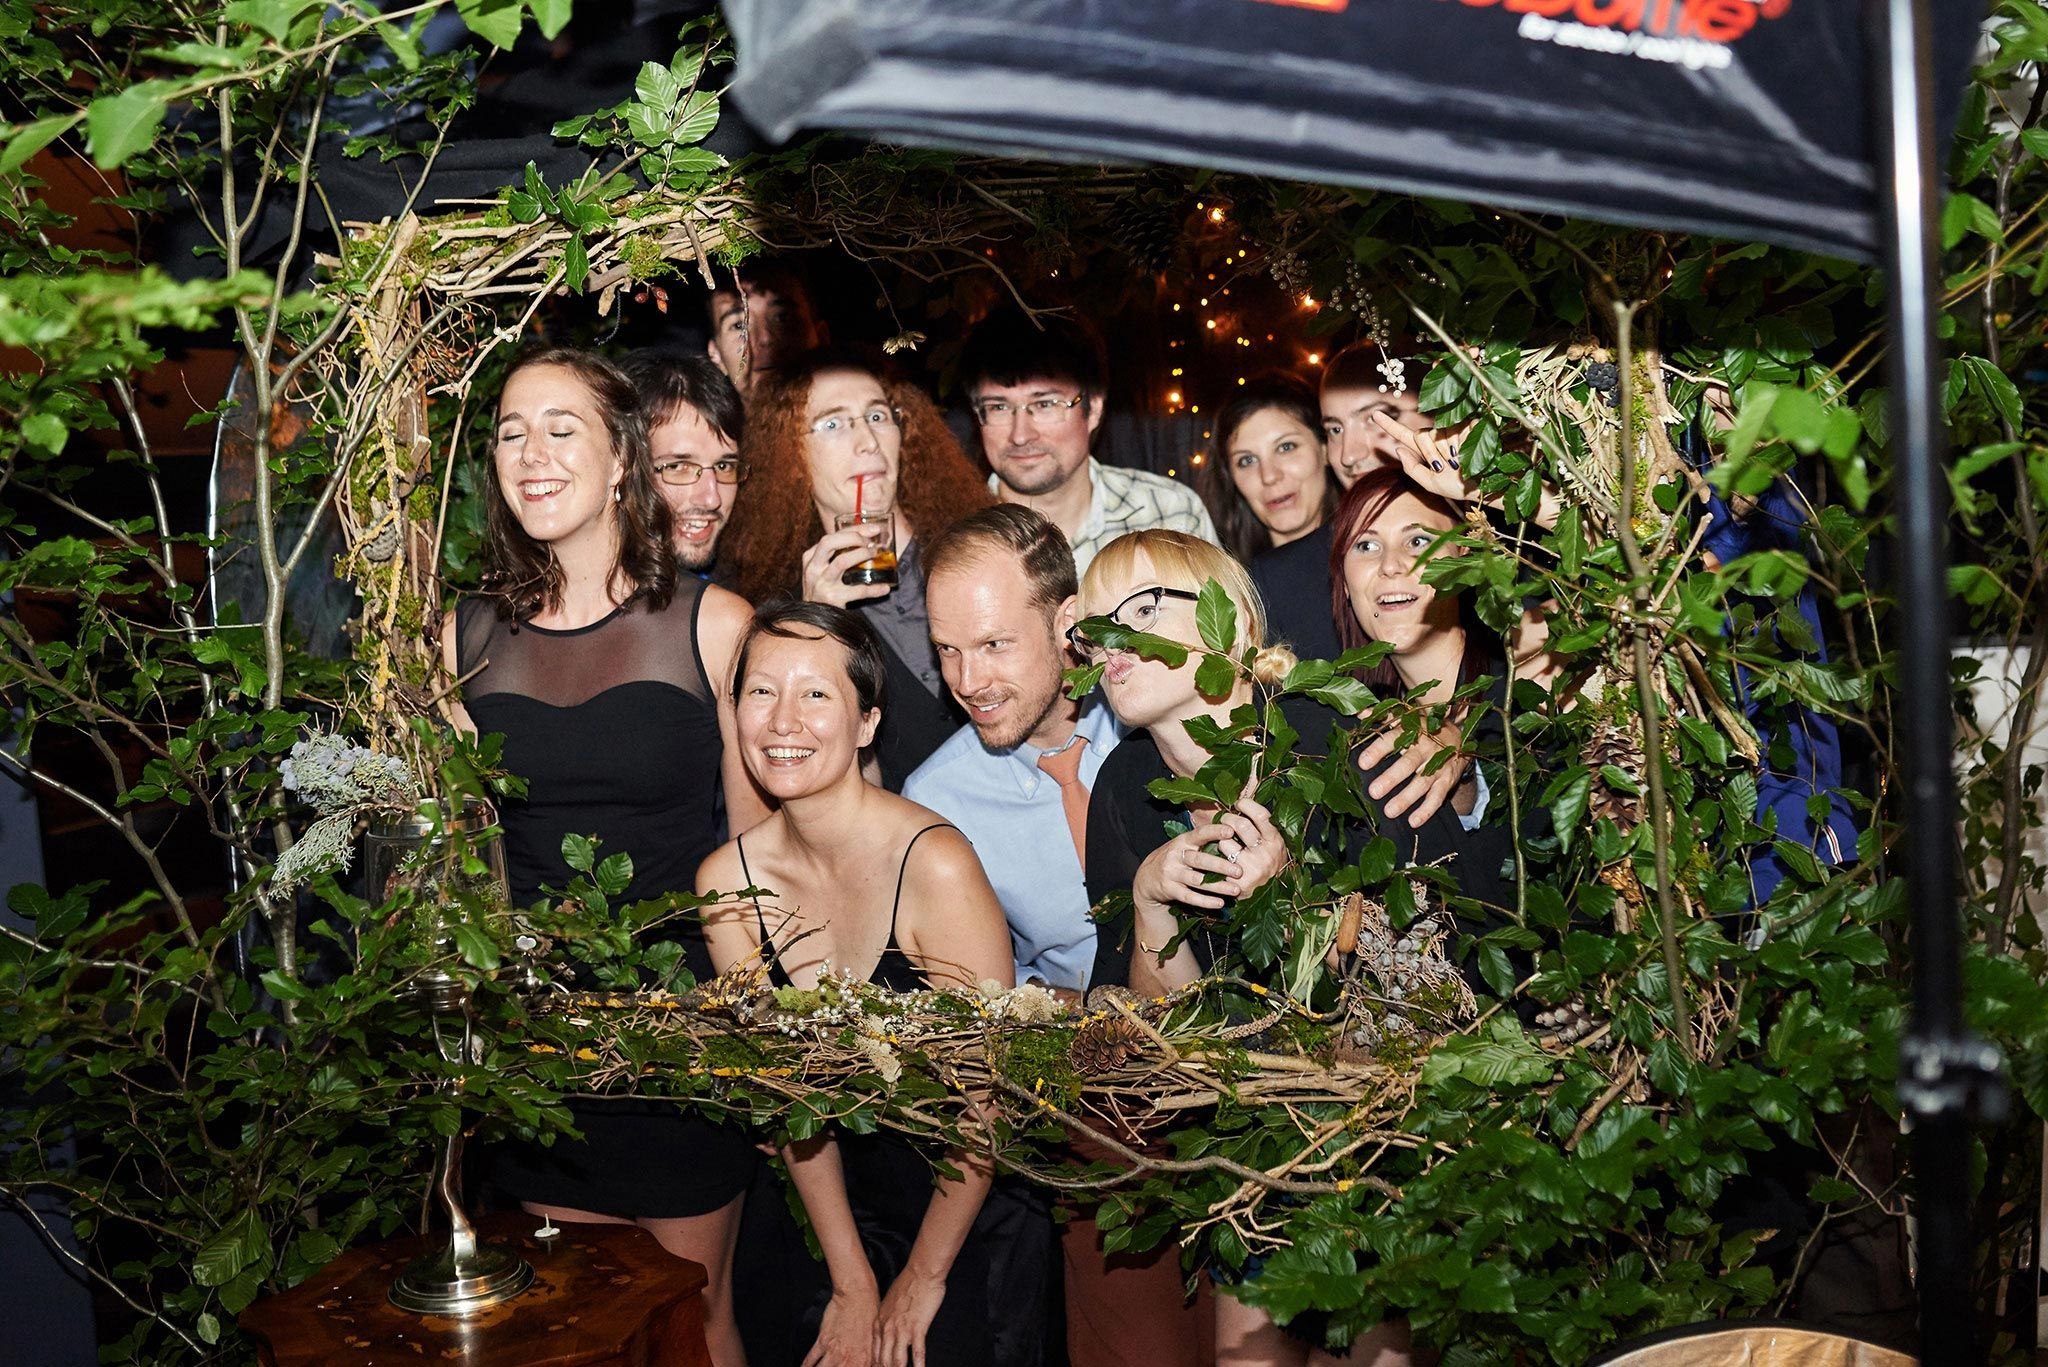 Enchanted forest photo booth! | Photo Booth in 2019 ...